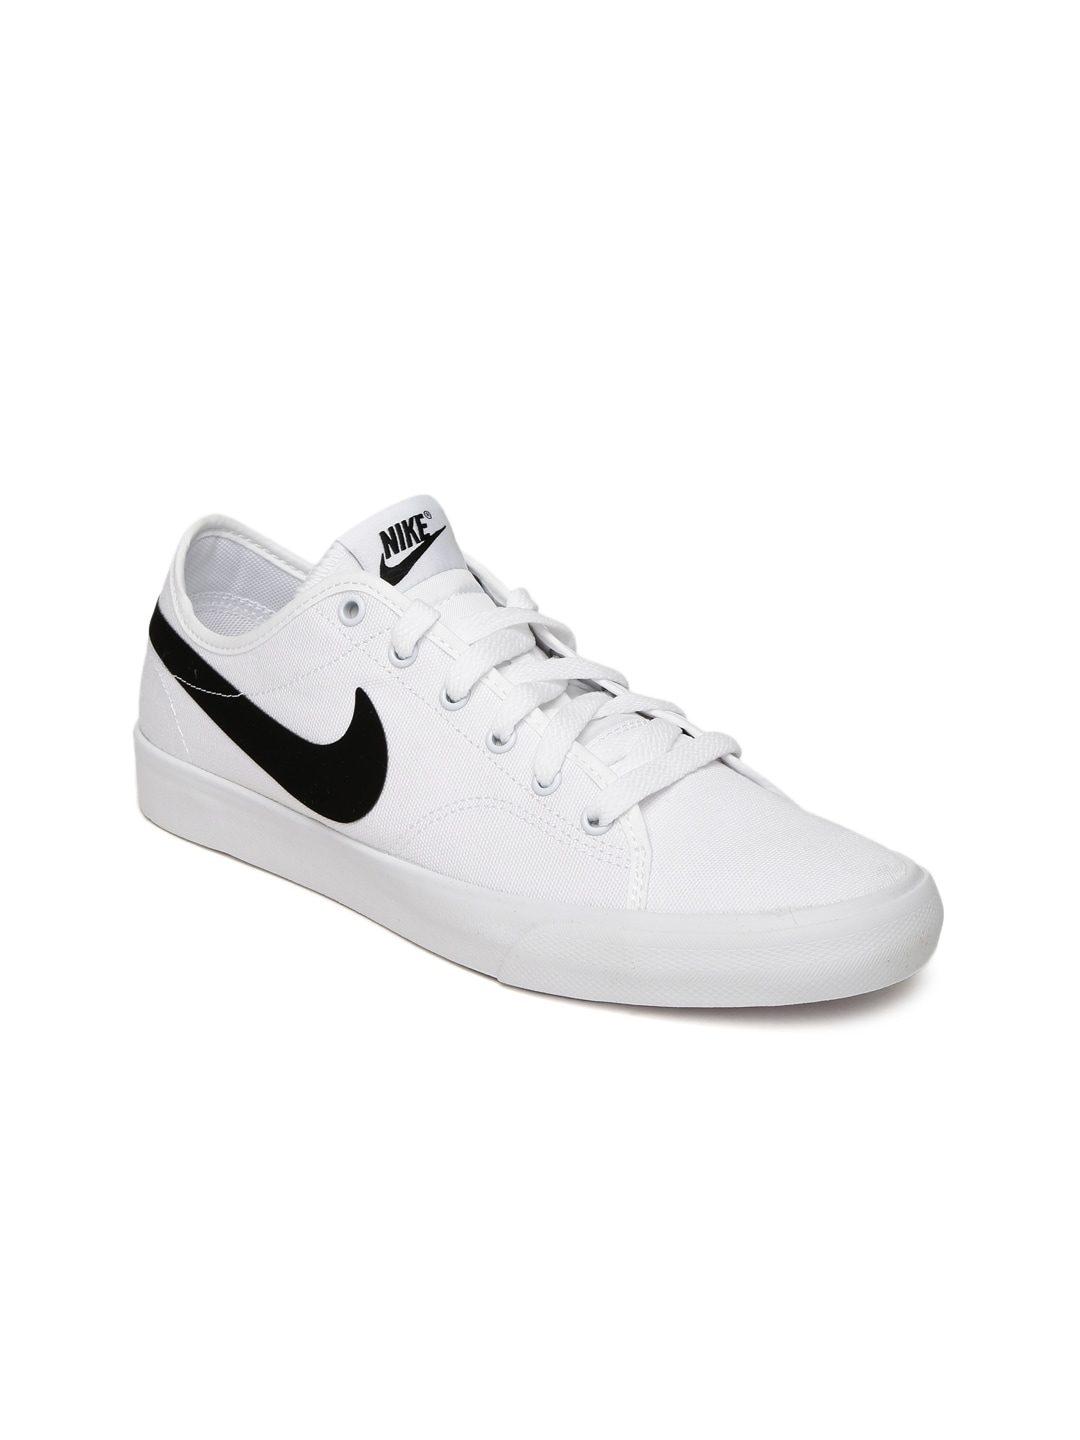 b936238dc3f3d Nike Canvas Shoes